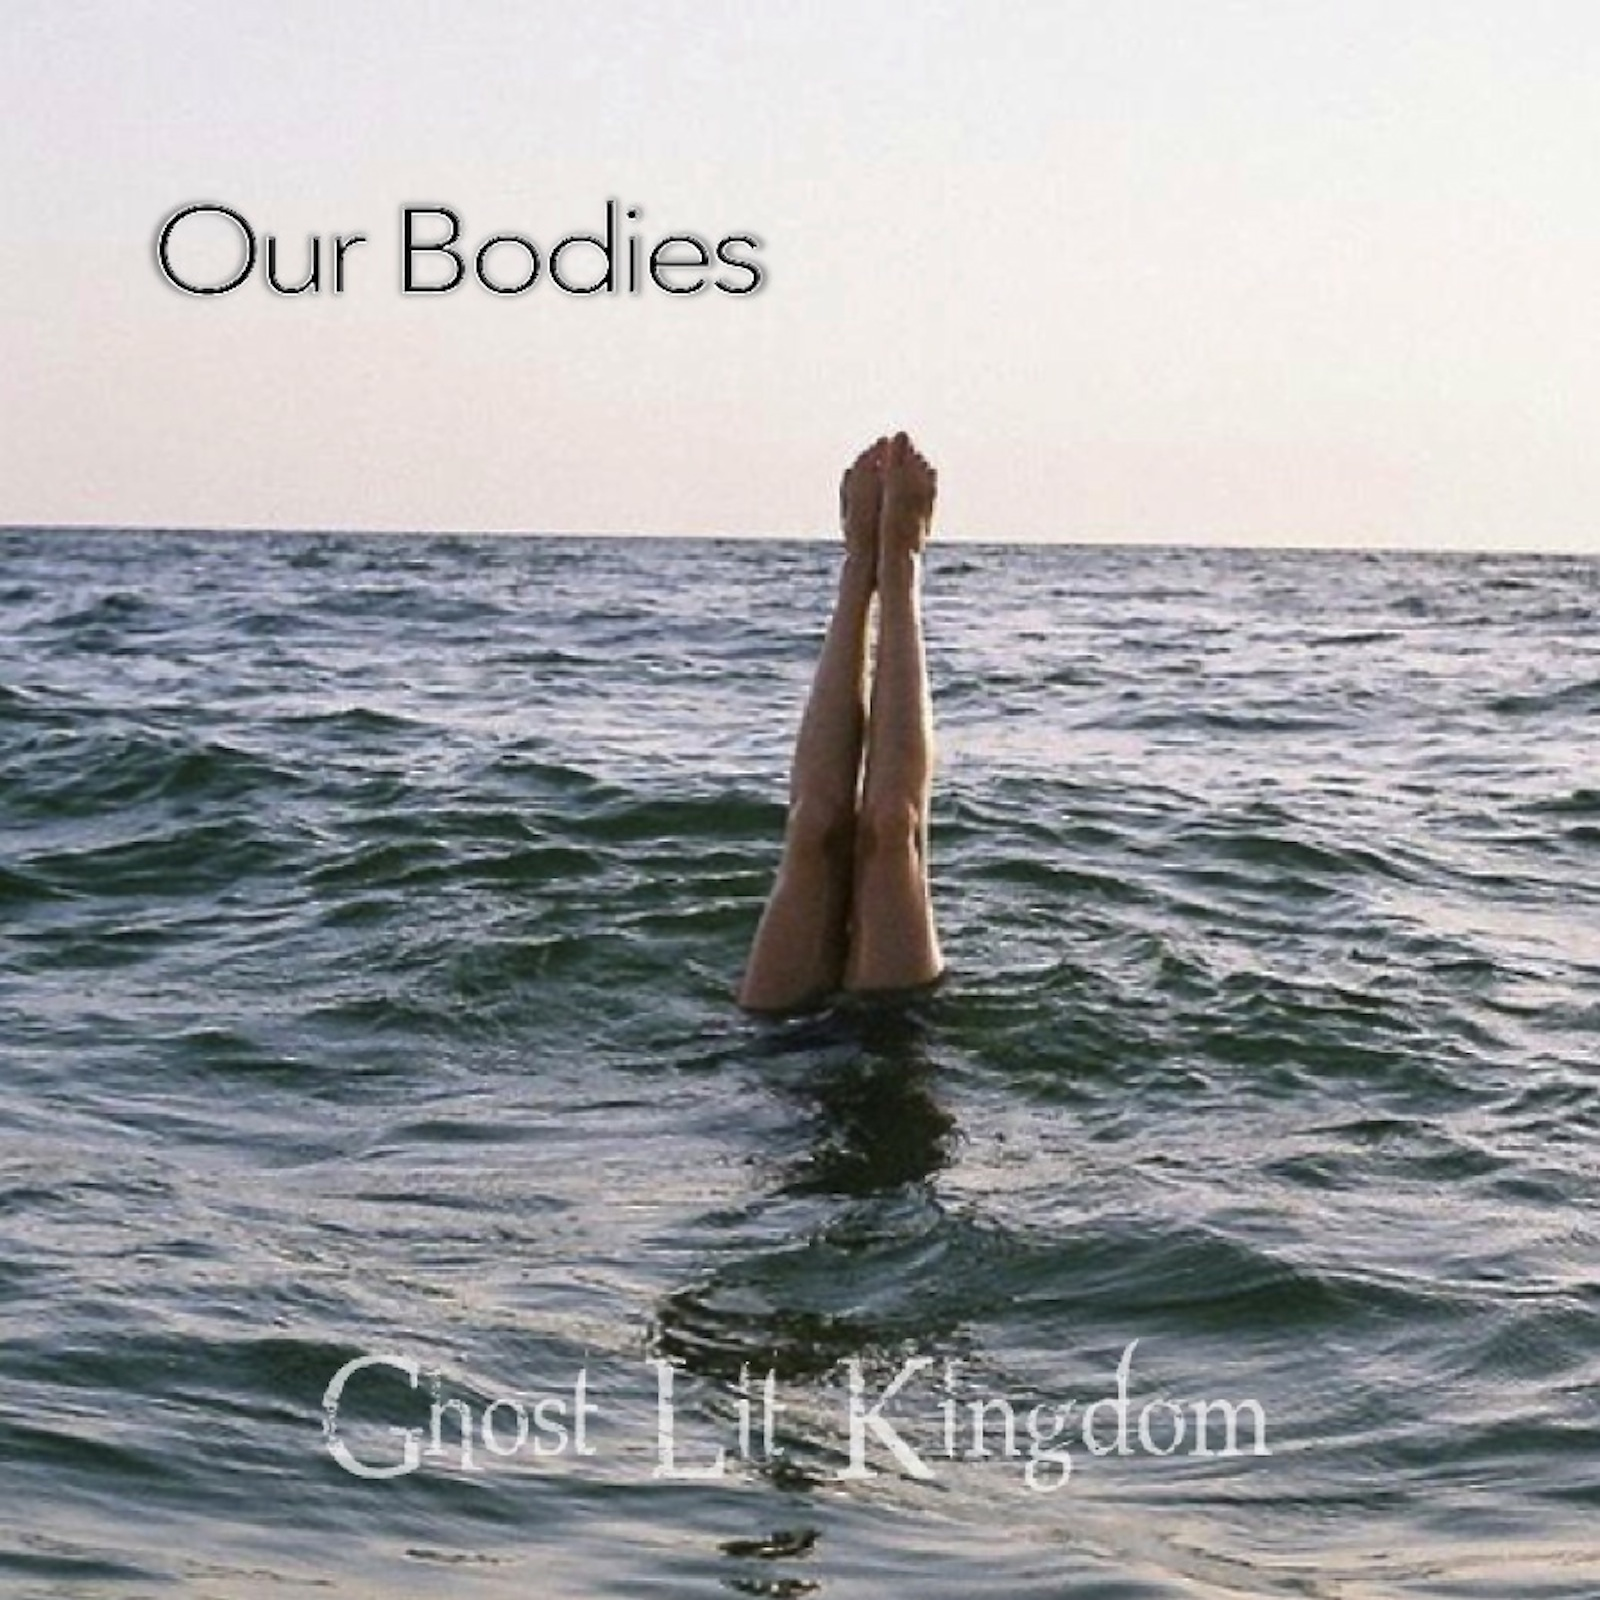 """Ghost Lit Kingdom Gets Vulnerable With """"Our Bodies"""""""